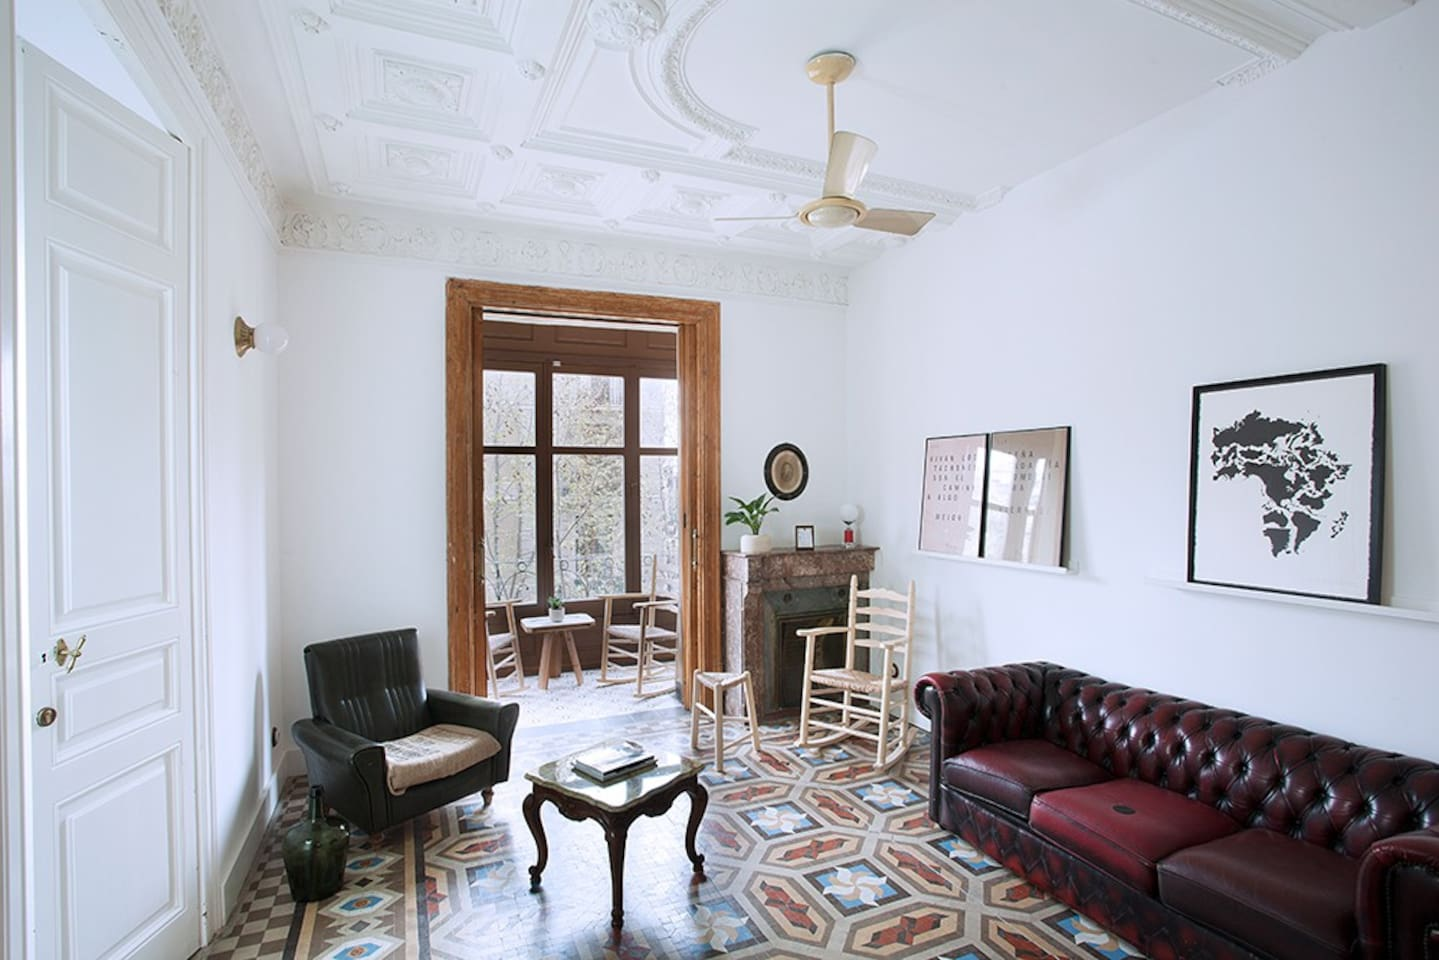 Living room with vintage and locally made furniture, and Catalan Modernism features like mosaic floors, 1900 carpentry and decorative ceilings.